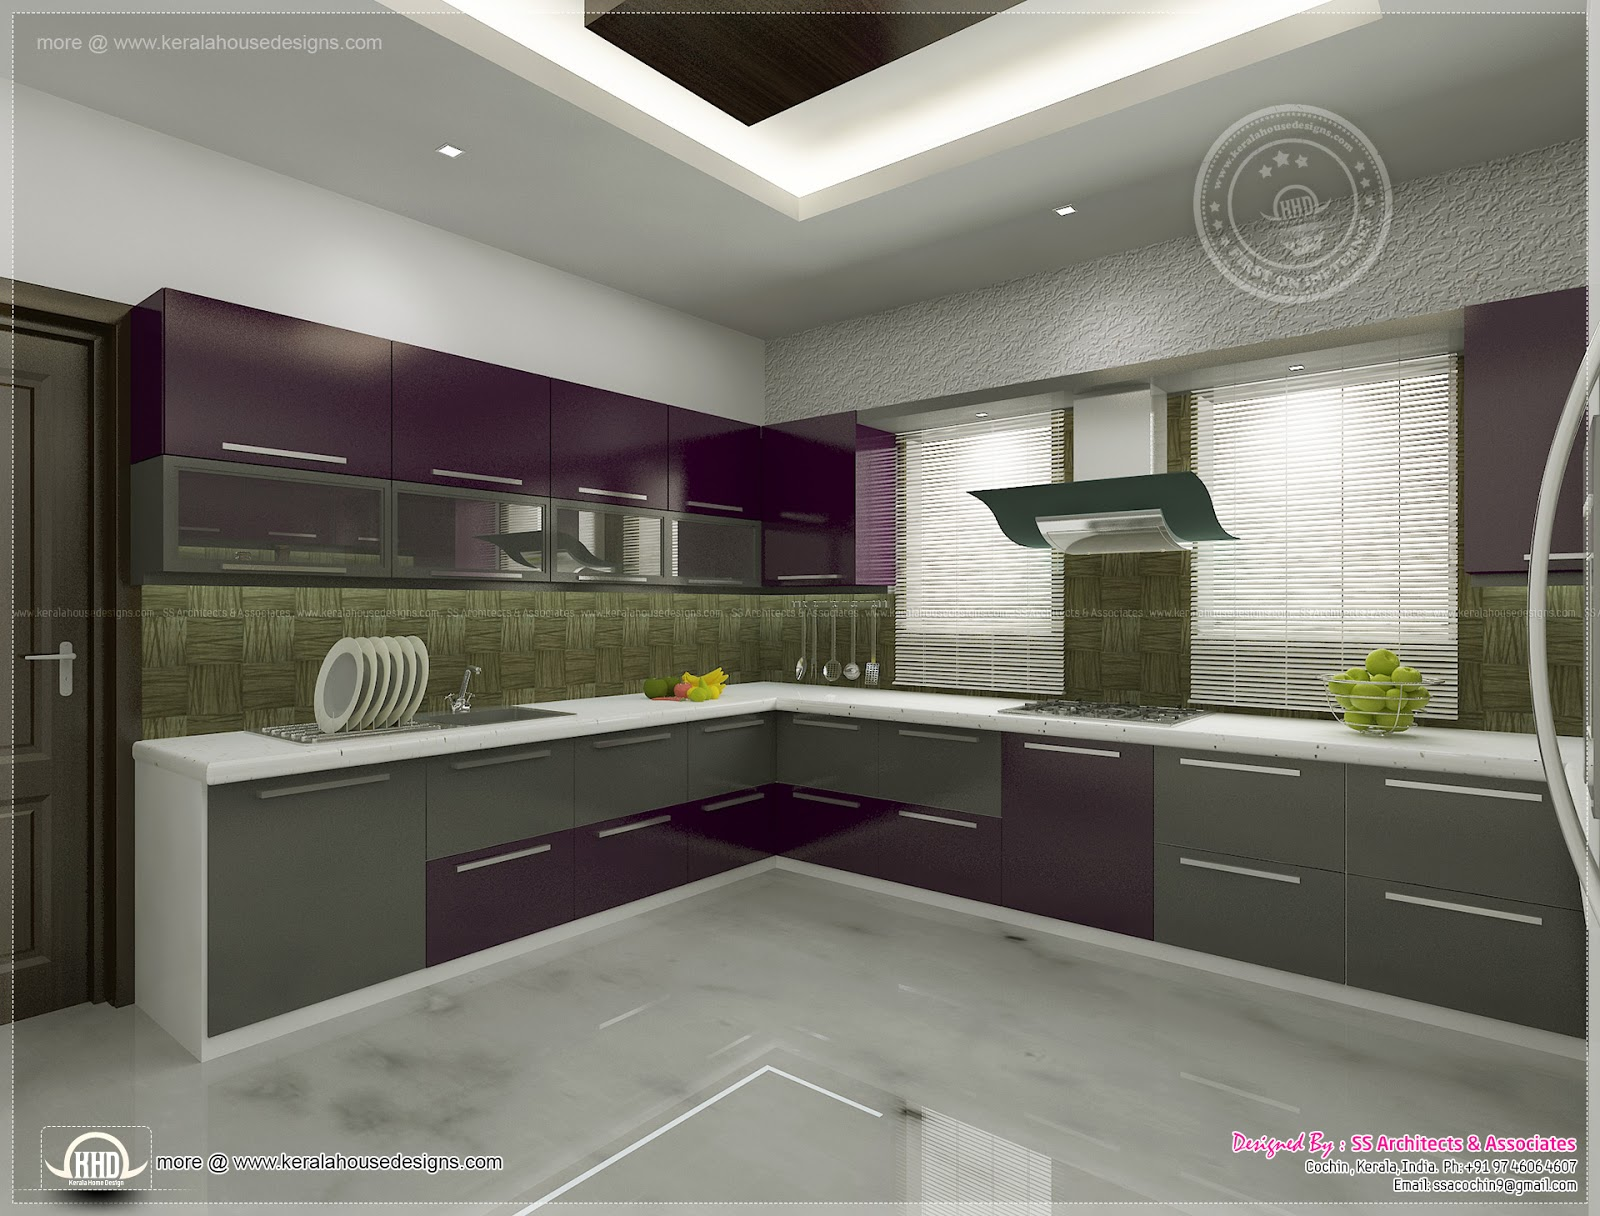 Kitchen interior views by SS Architects, Cochin | Home ...